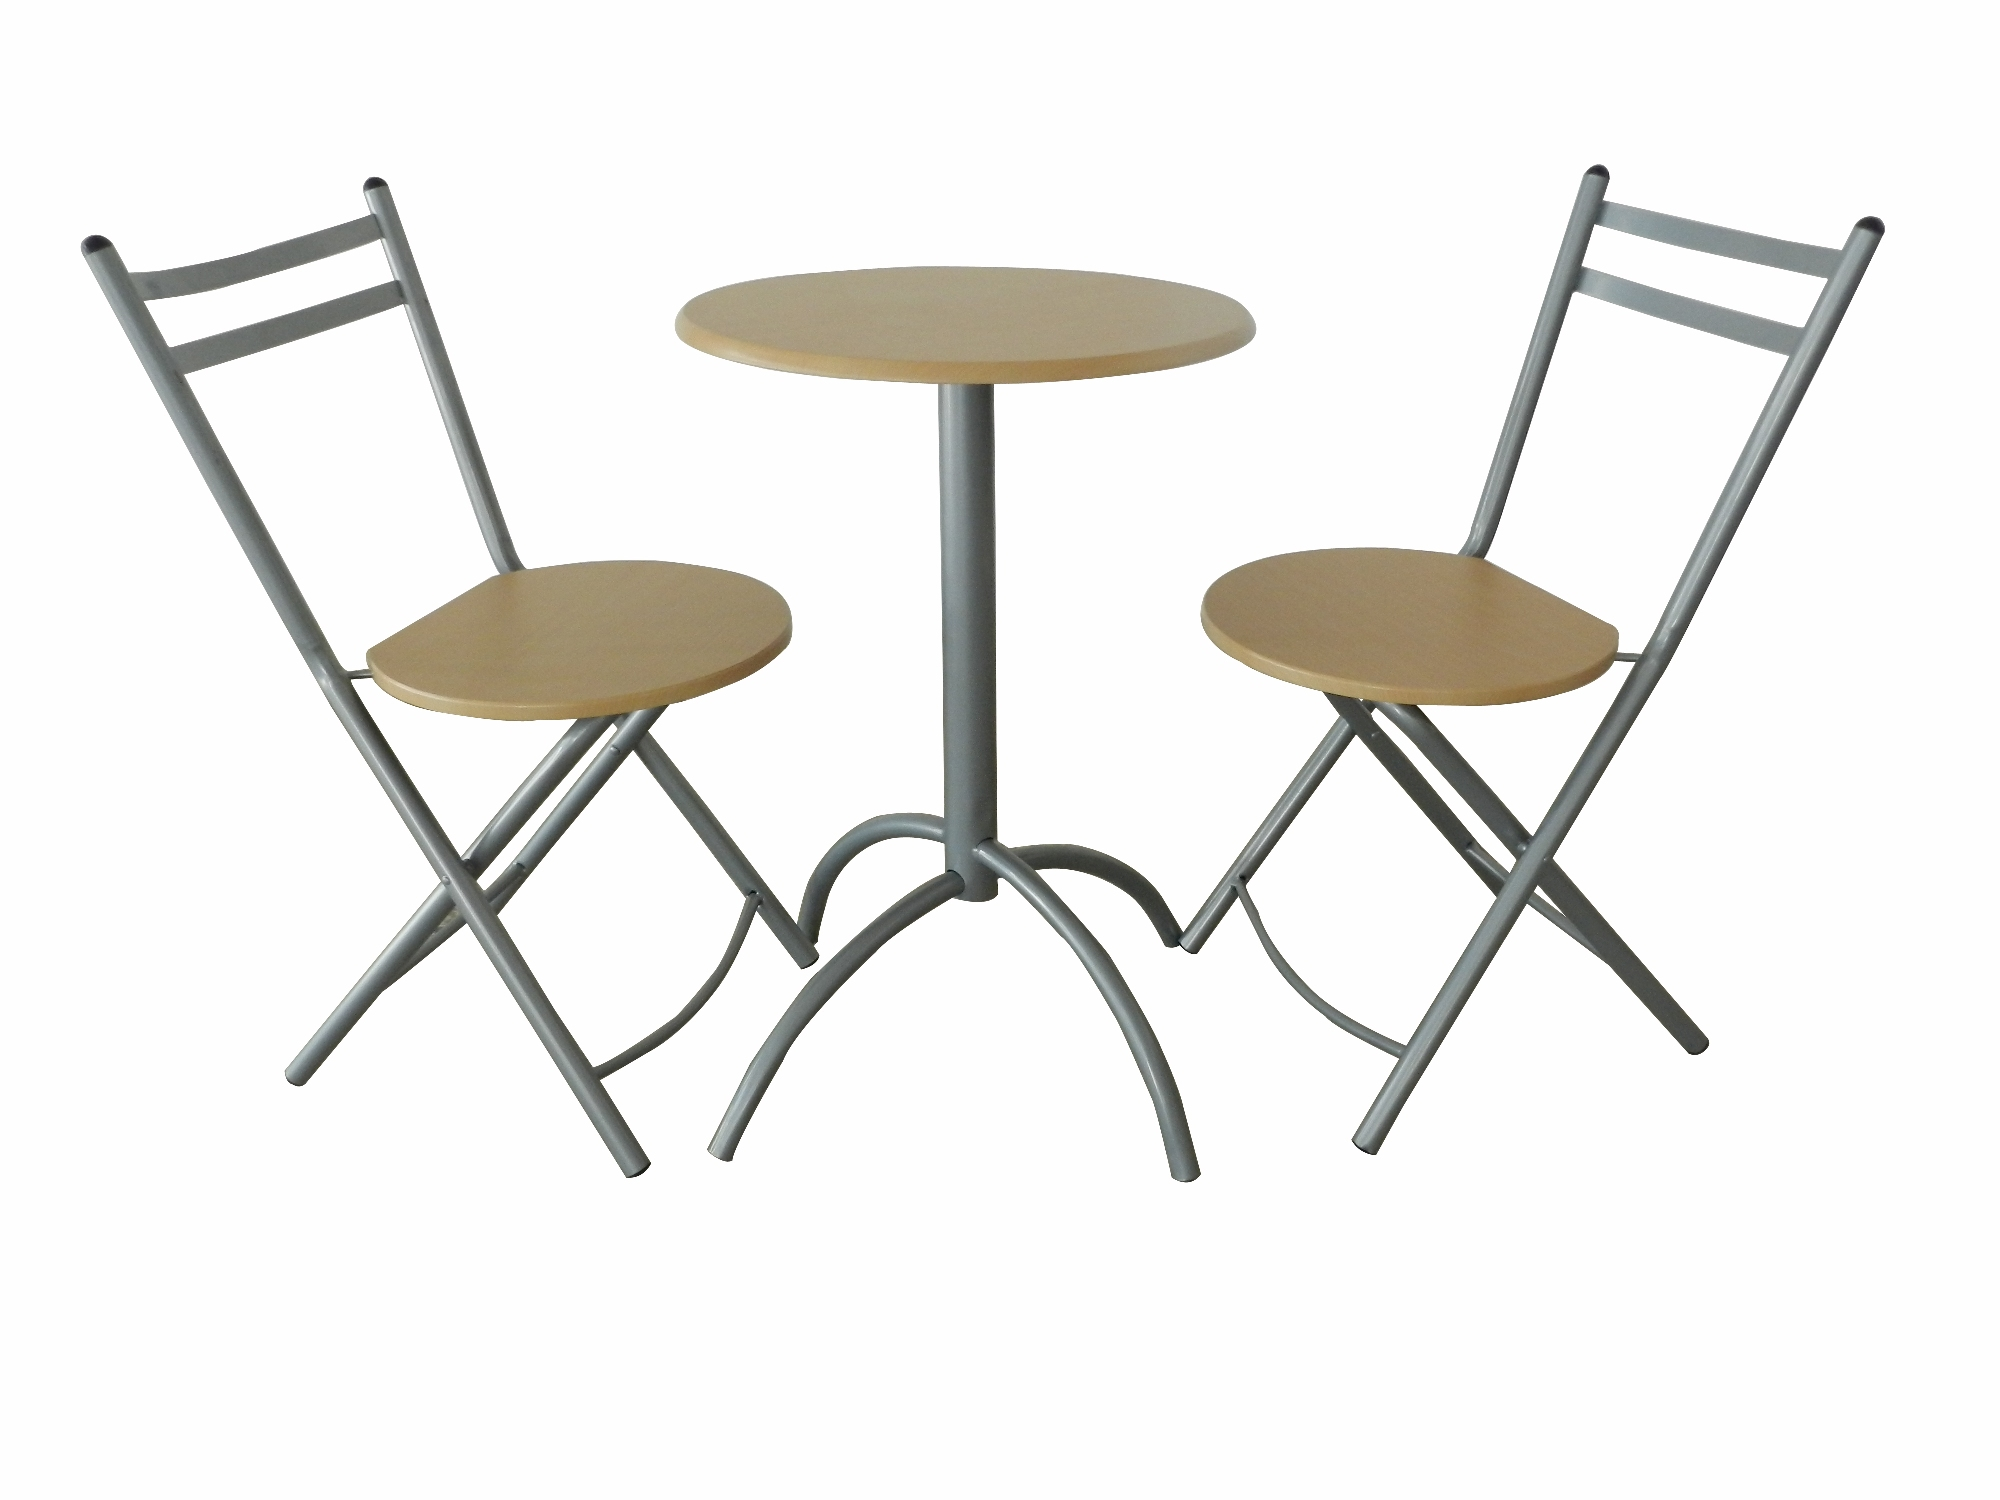 bistro sthle tische latest bistro set tisch sthle. Black Bedroom Furniture Sets. Home Design Ideas